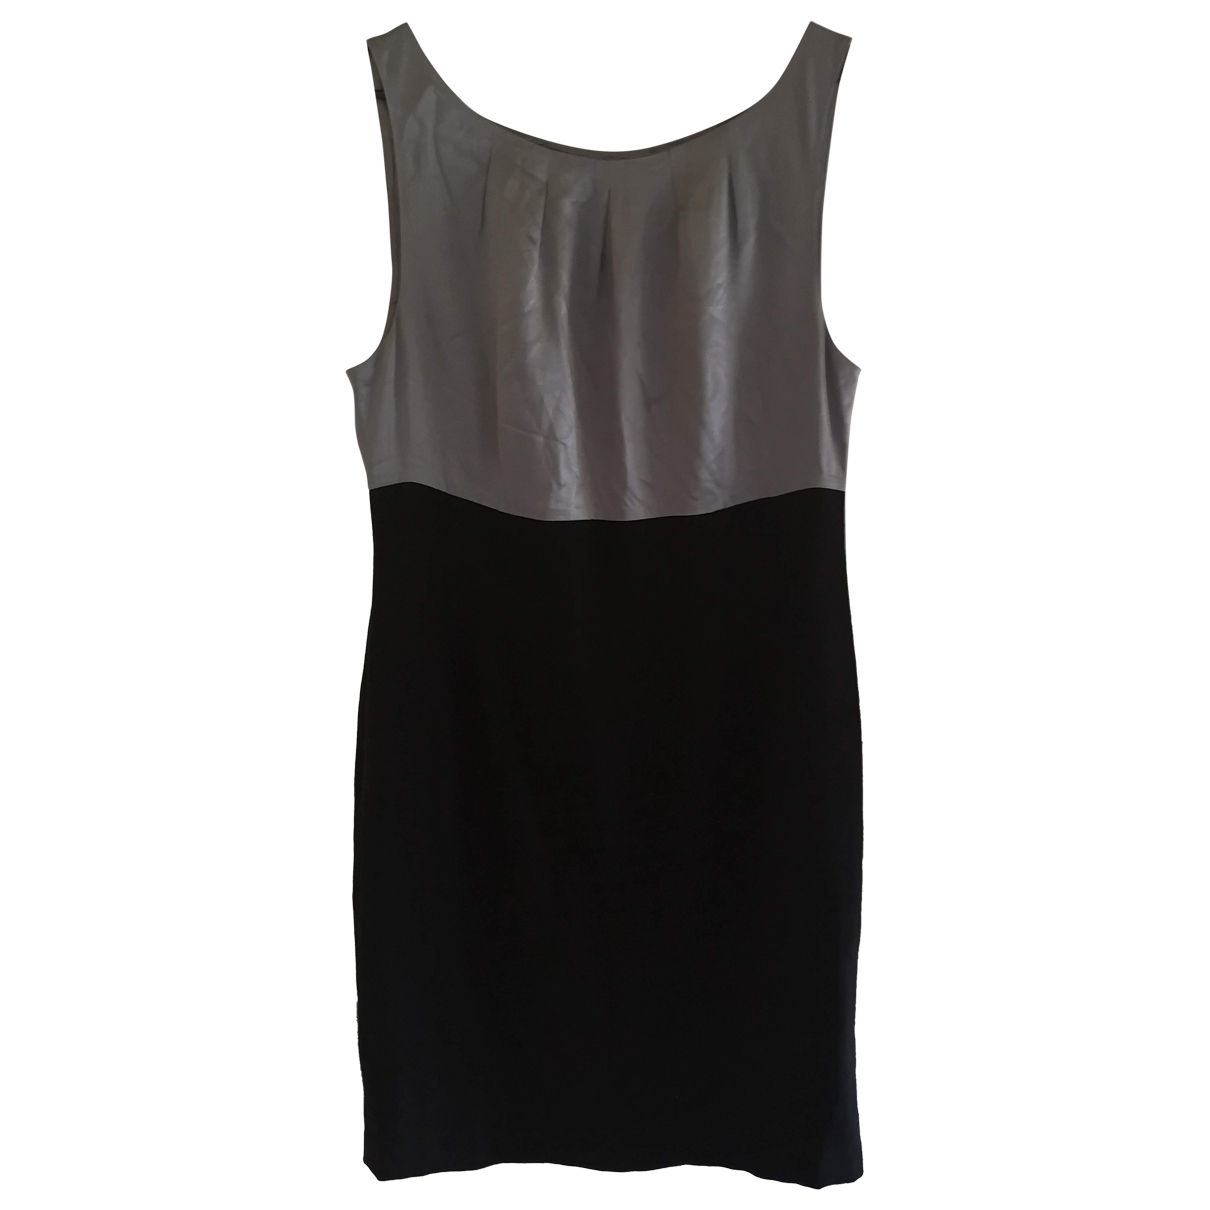 Lk Bennett \N Black Silk dress for Women 14 UK